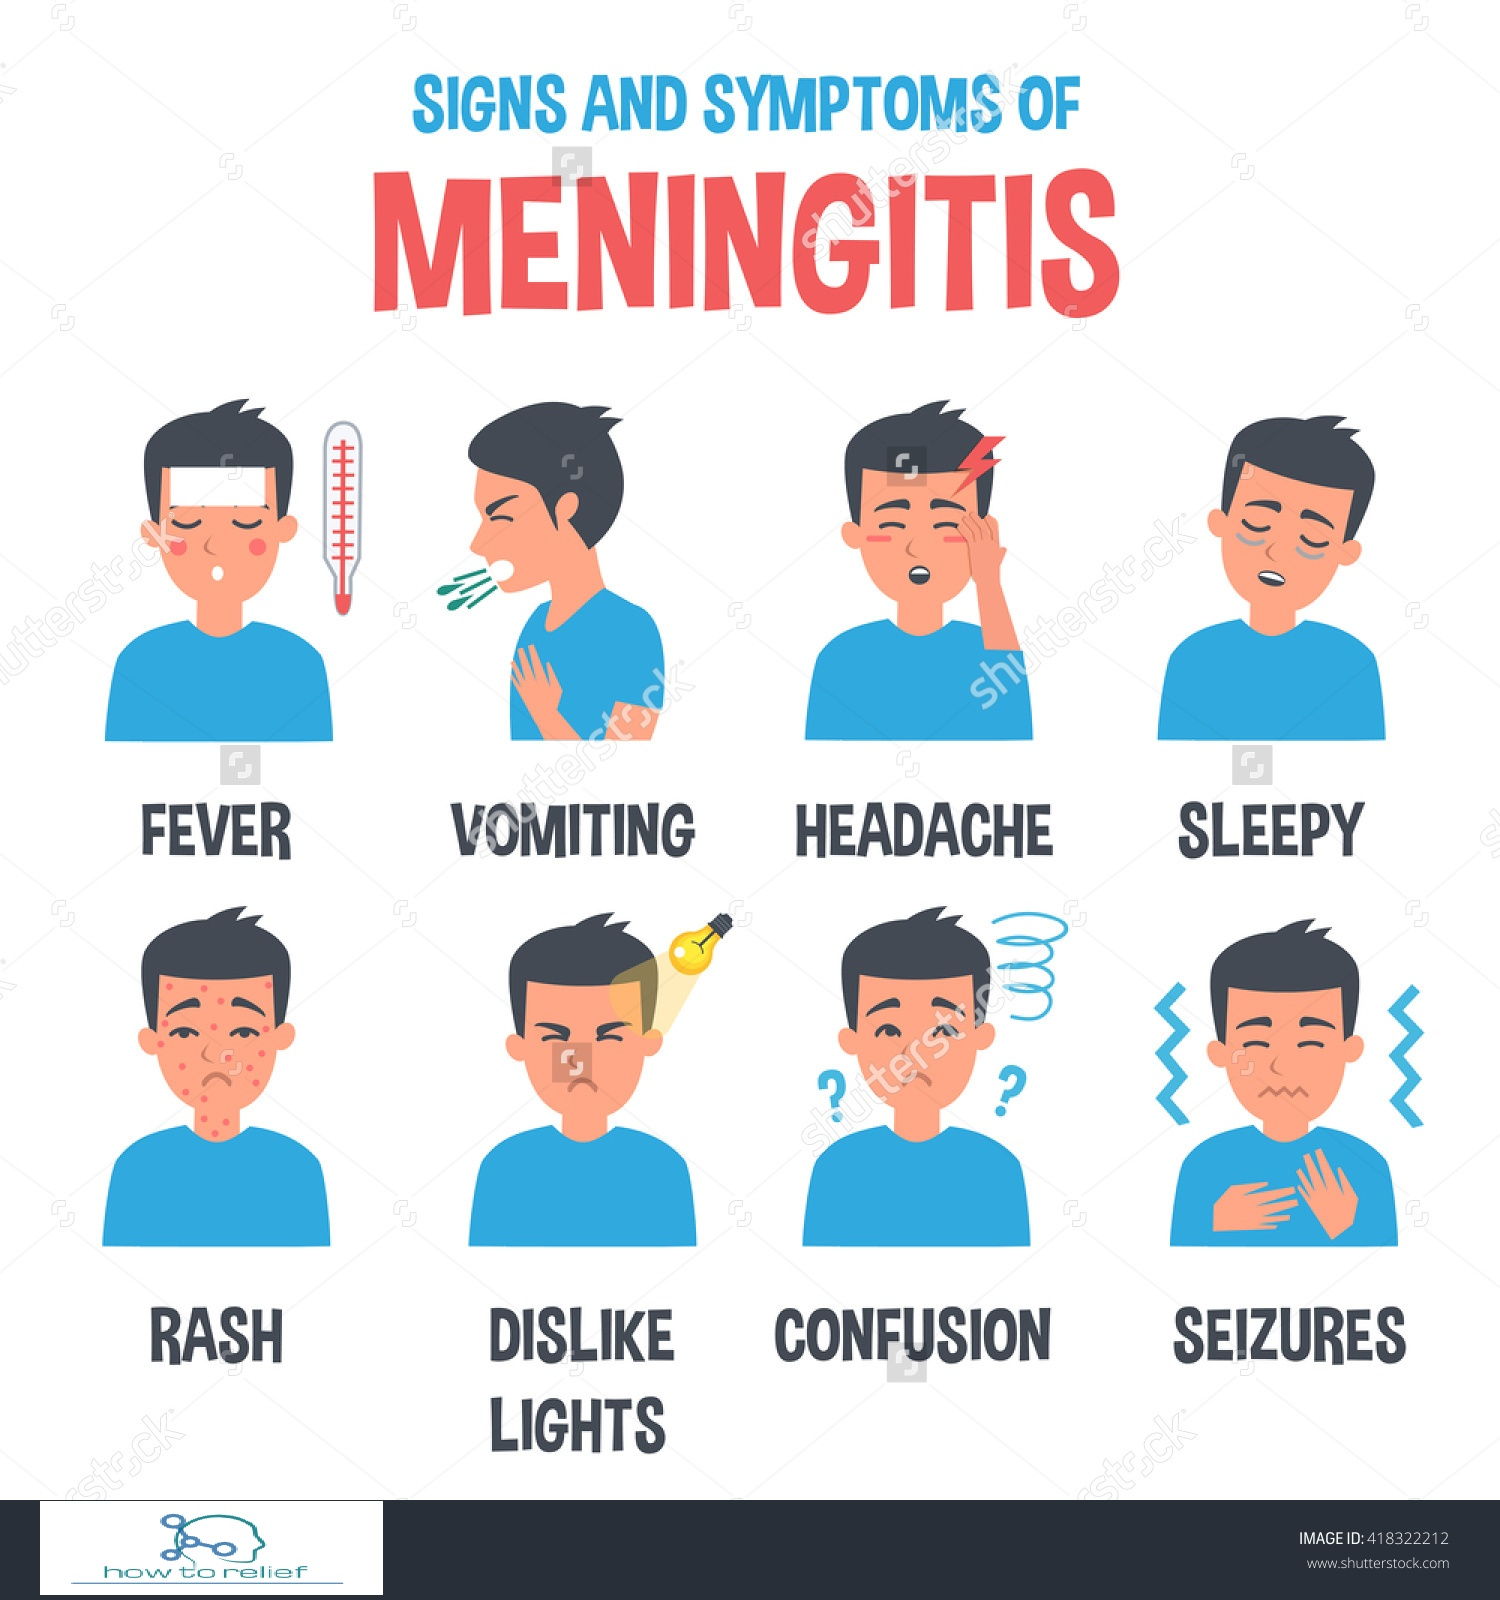 Meningitis Is Usually Caused By A Viral Infection But: Meningitis! Causes, Symptom, Treatment & Vaccinations